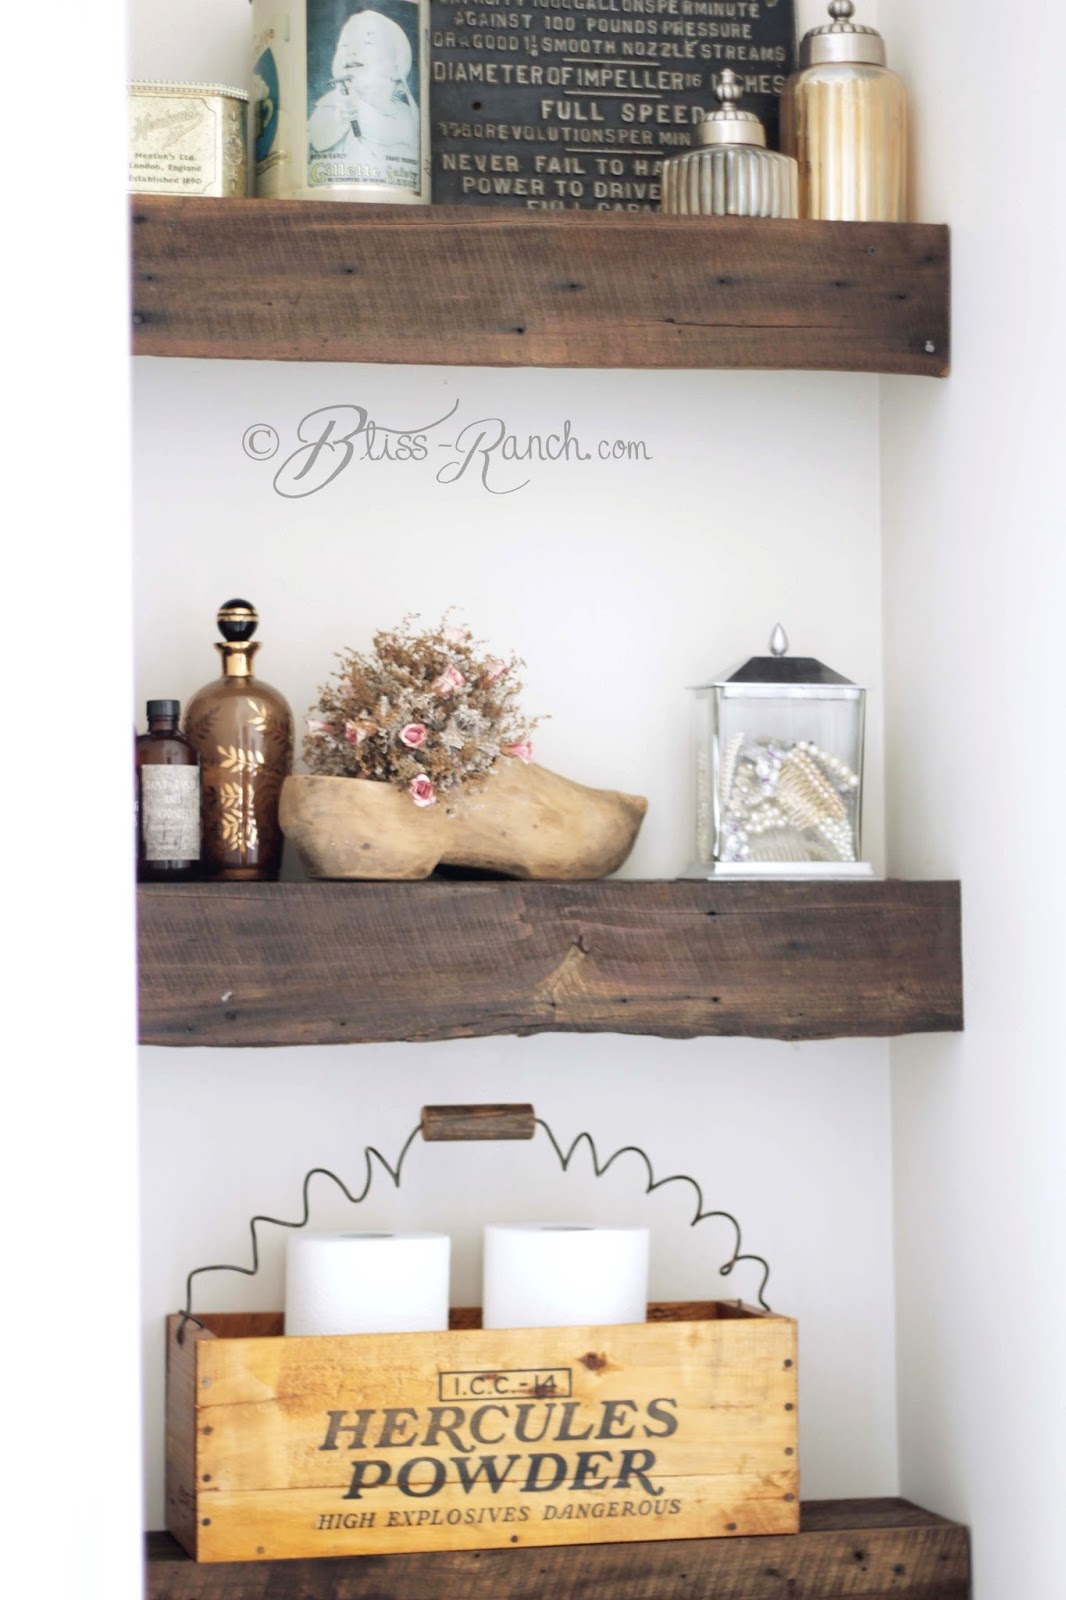 Barn Wood Shelves, Bliss-Ranch.com